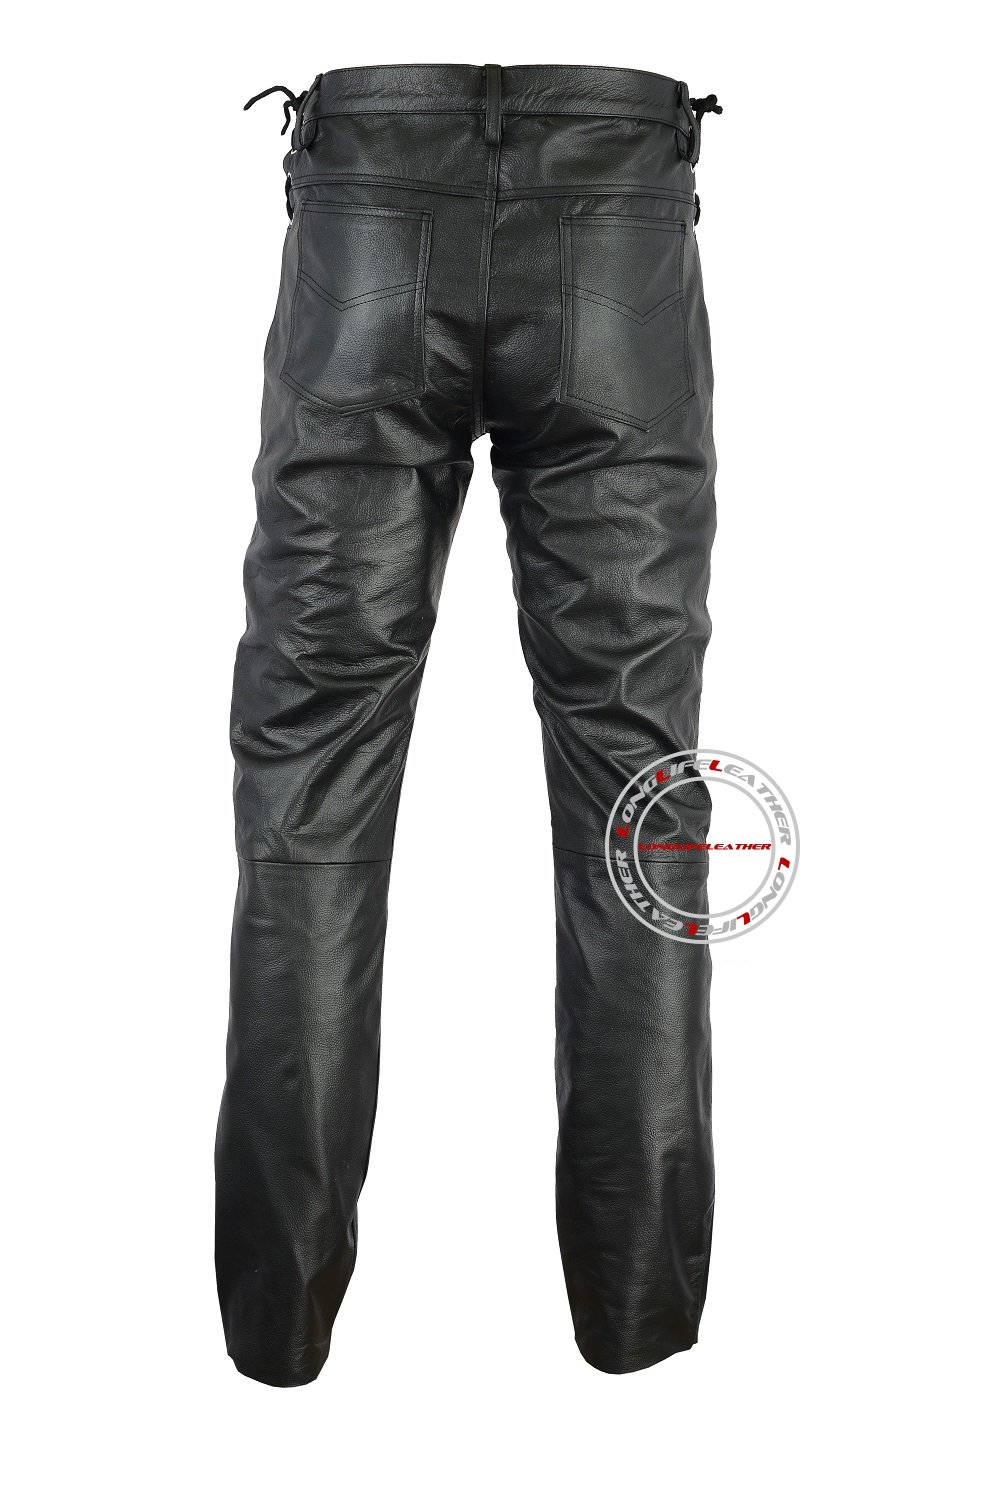 Mens Genuine Leather Waist Side Laces Pant 5 Pockets Jeans Style Model L-102 (32'' Waist)